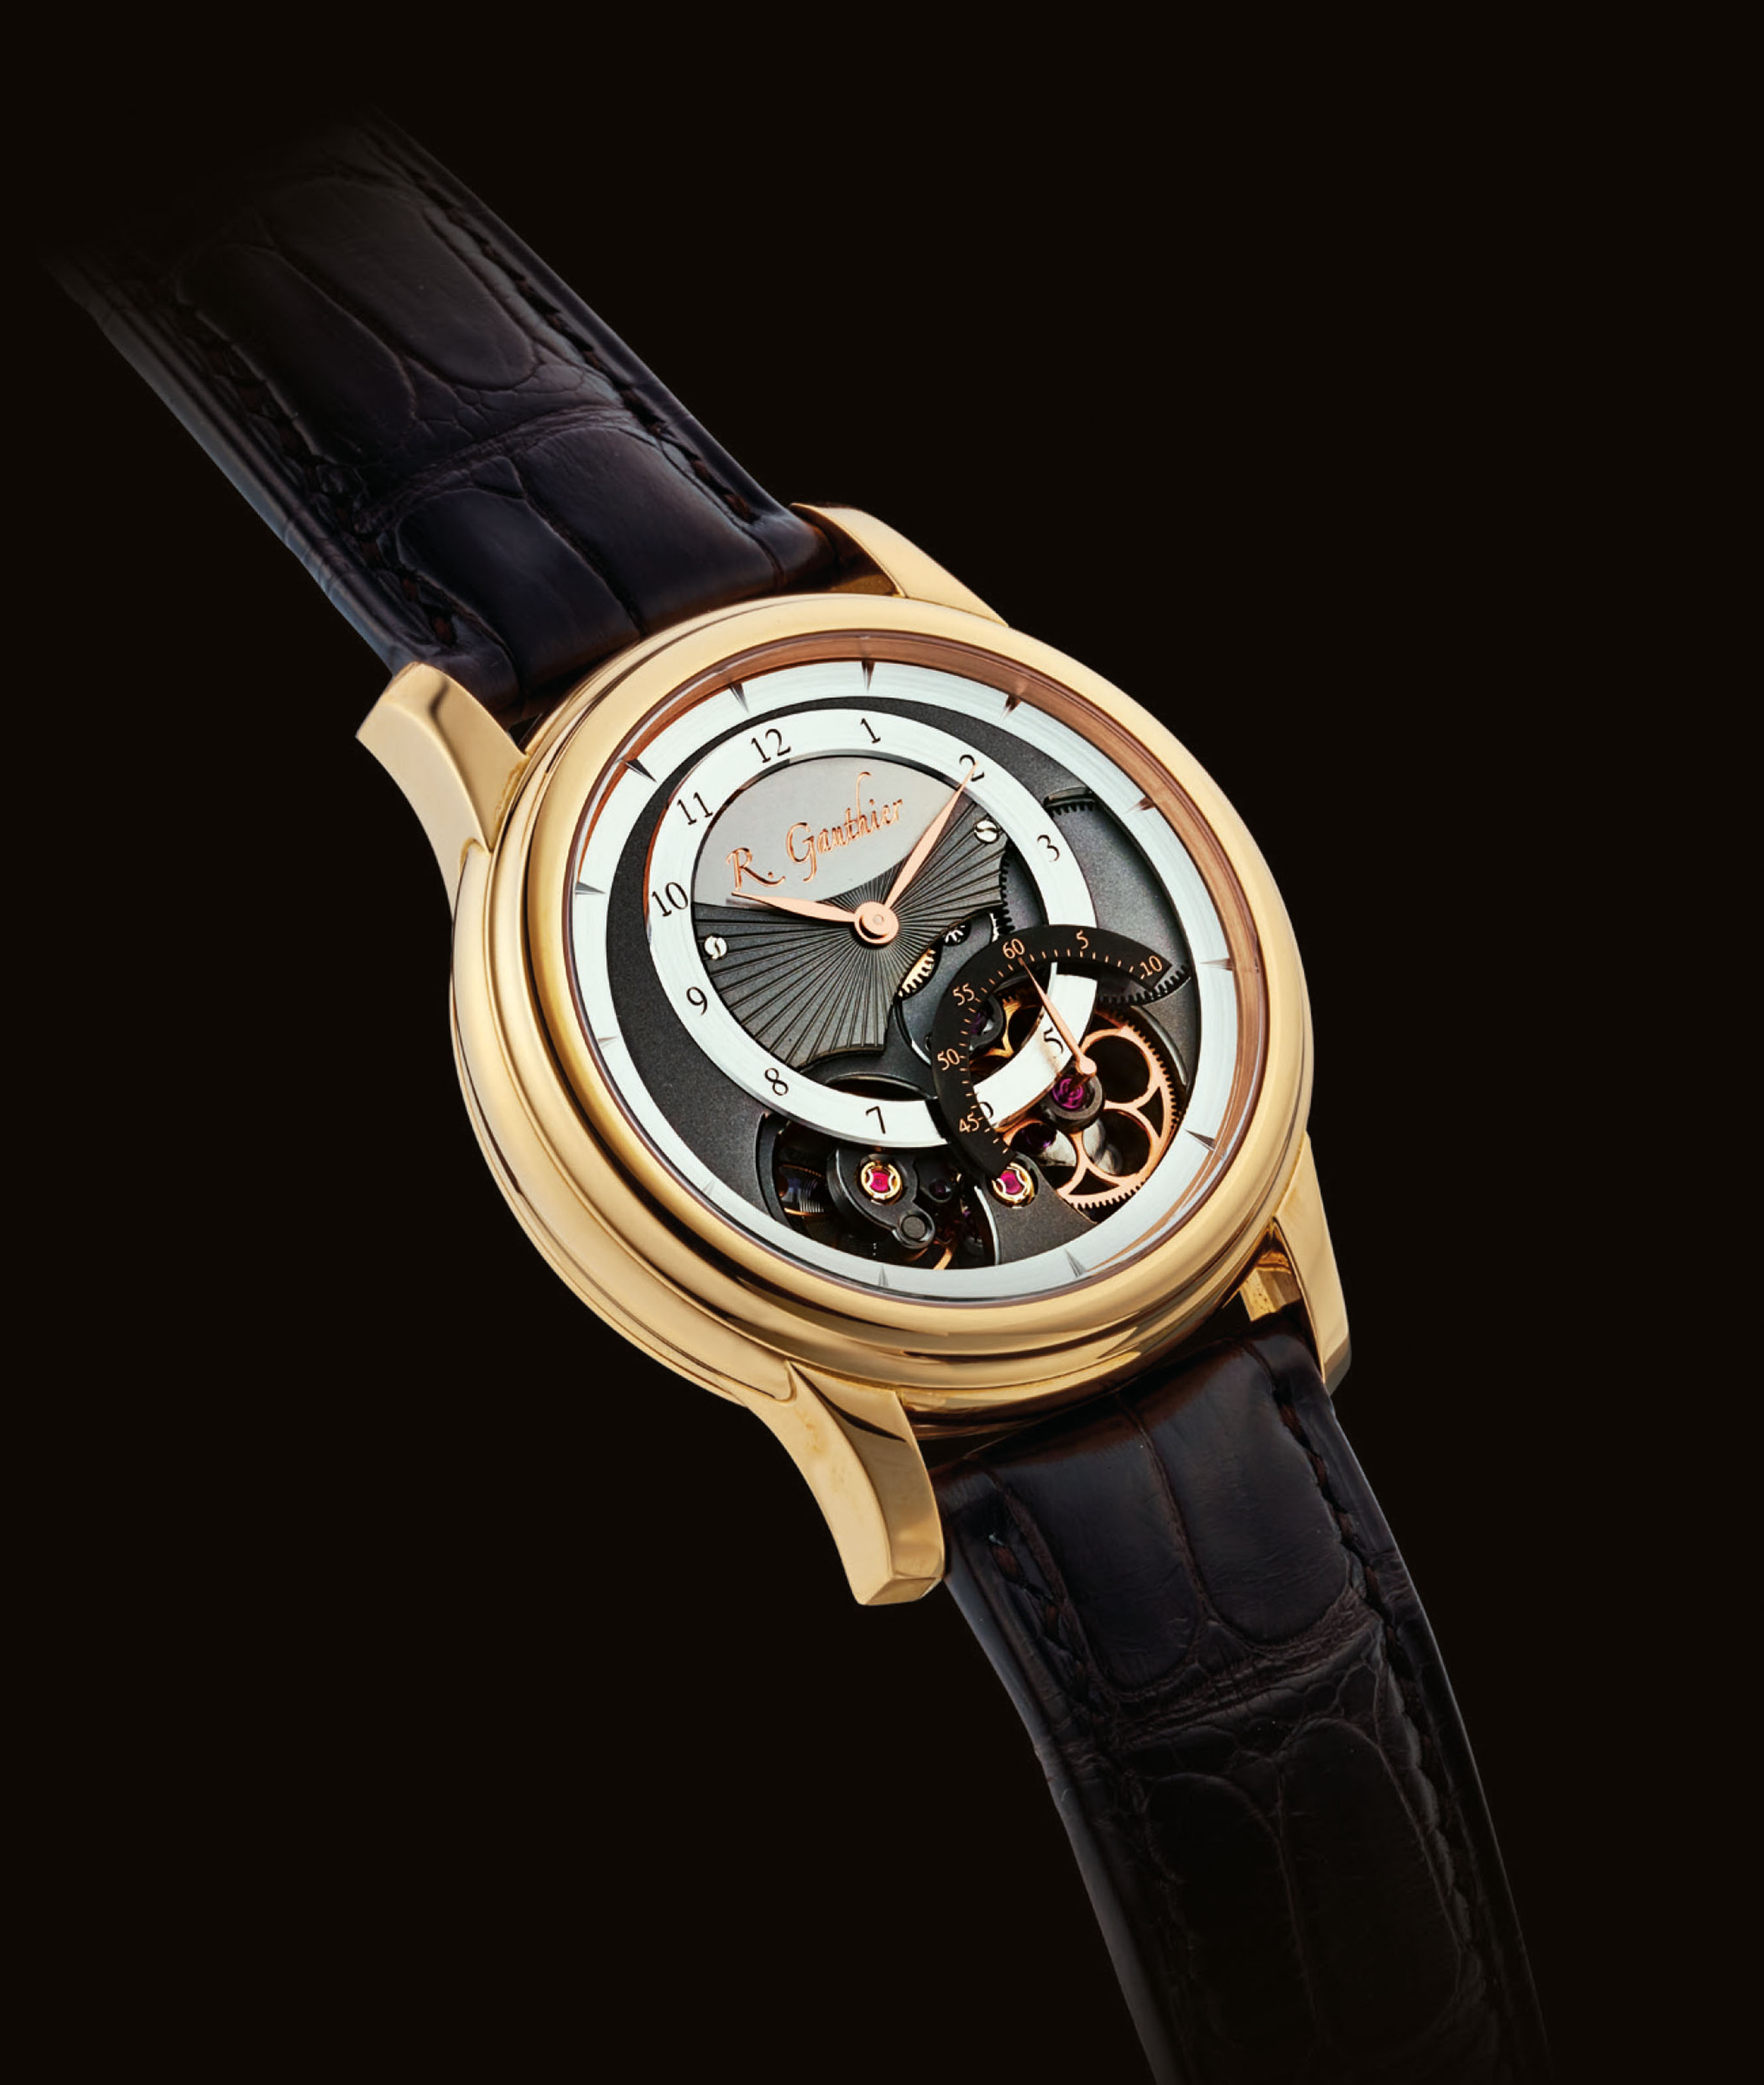 ROMAIN GAUTHIER. A VERY FINE AND RARE 18K PINK GOLD SEMI-SKELETONISED WRISTWATCH